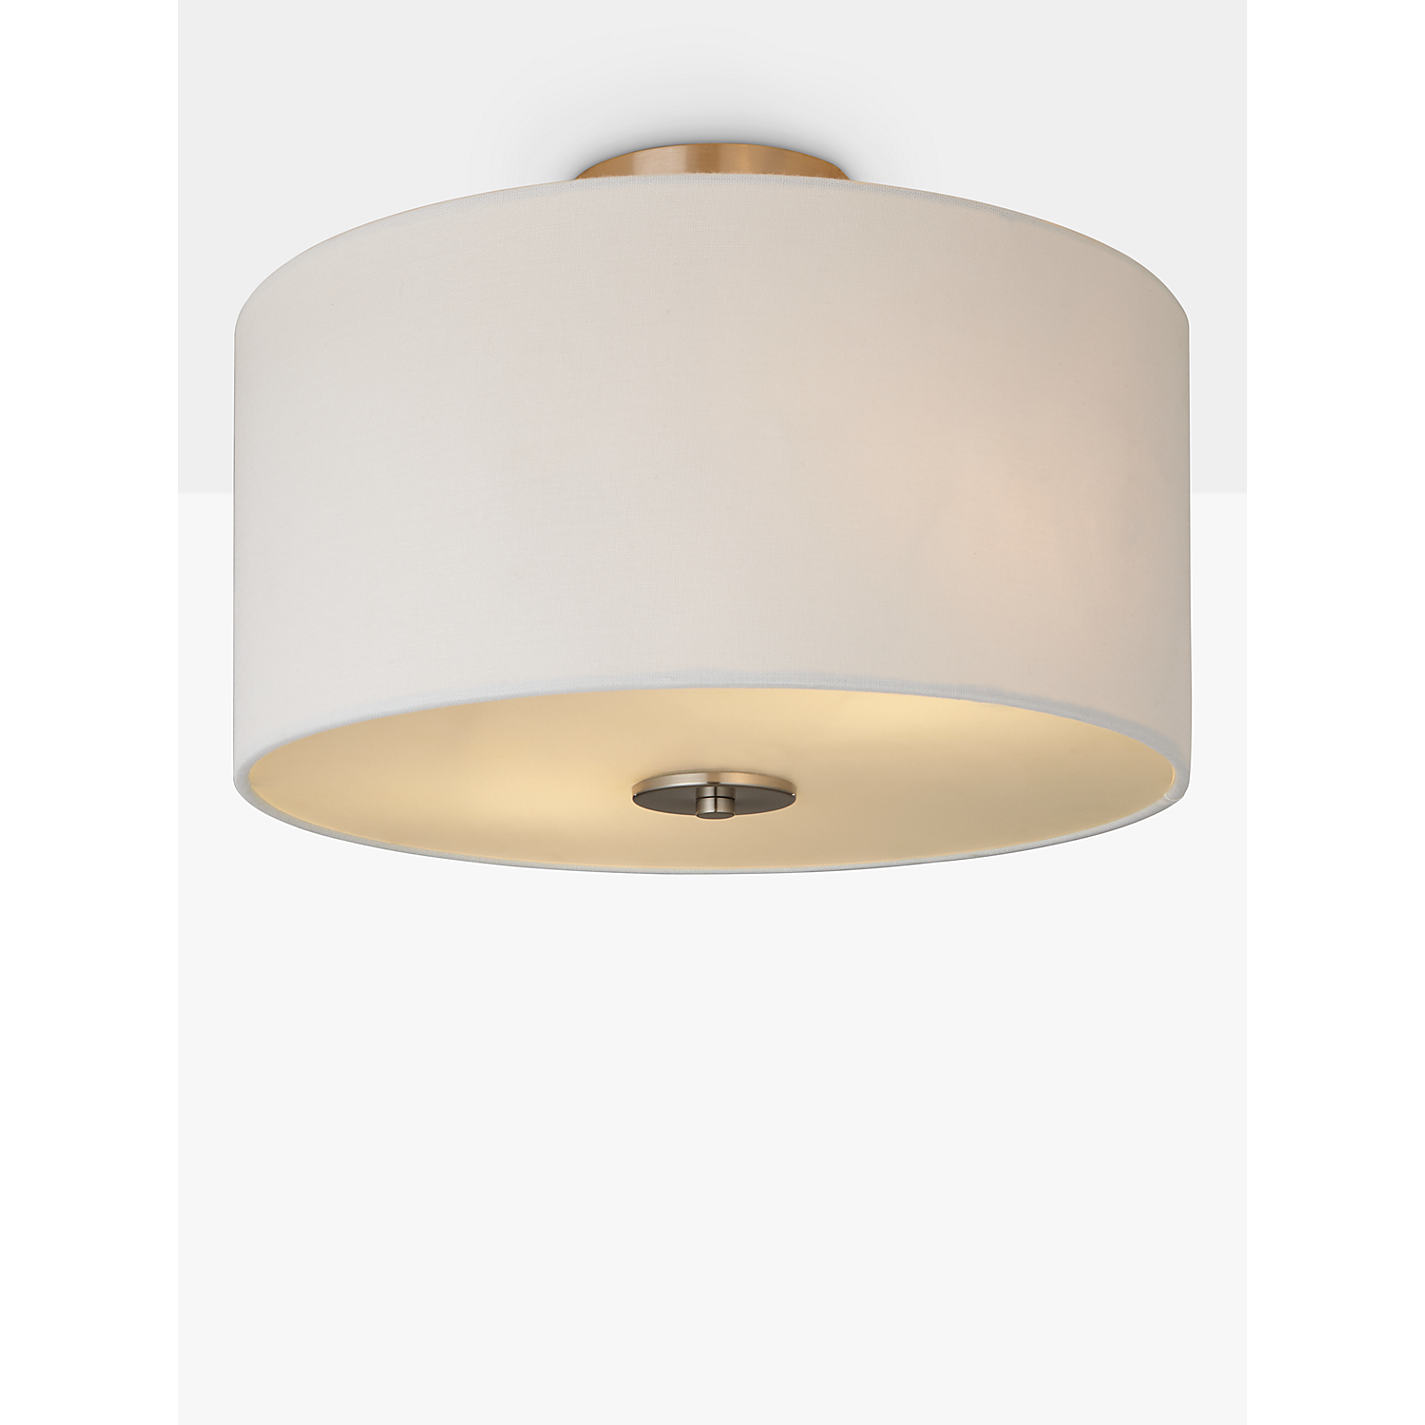 Buy john lewis jamieson semi flush ceiling light satin nickel buy john lewis jamieson semi flush ceiling light satin nickel online at johnlewis aloadofball Choice Image